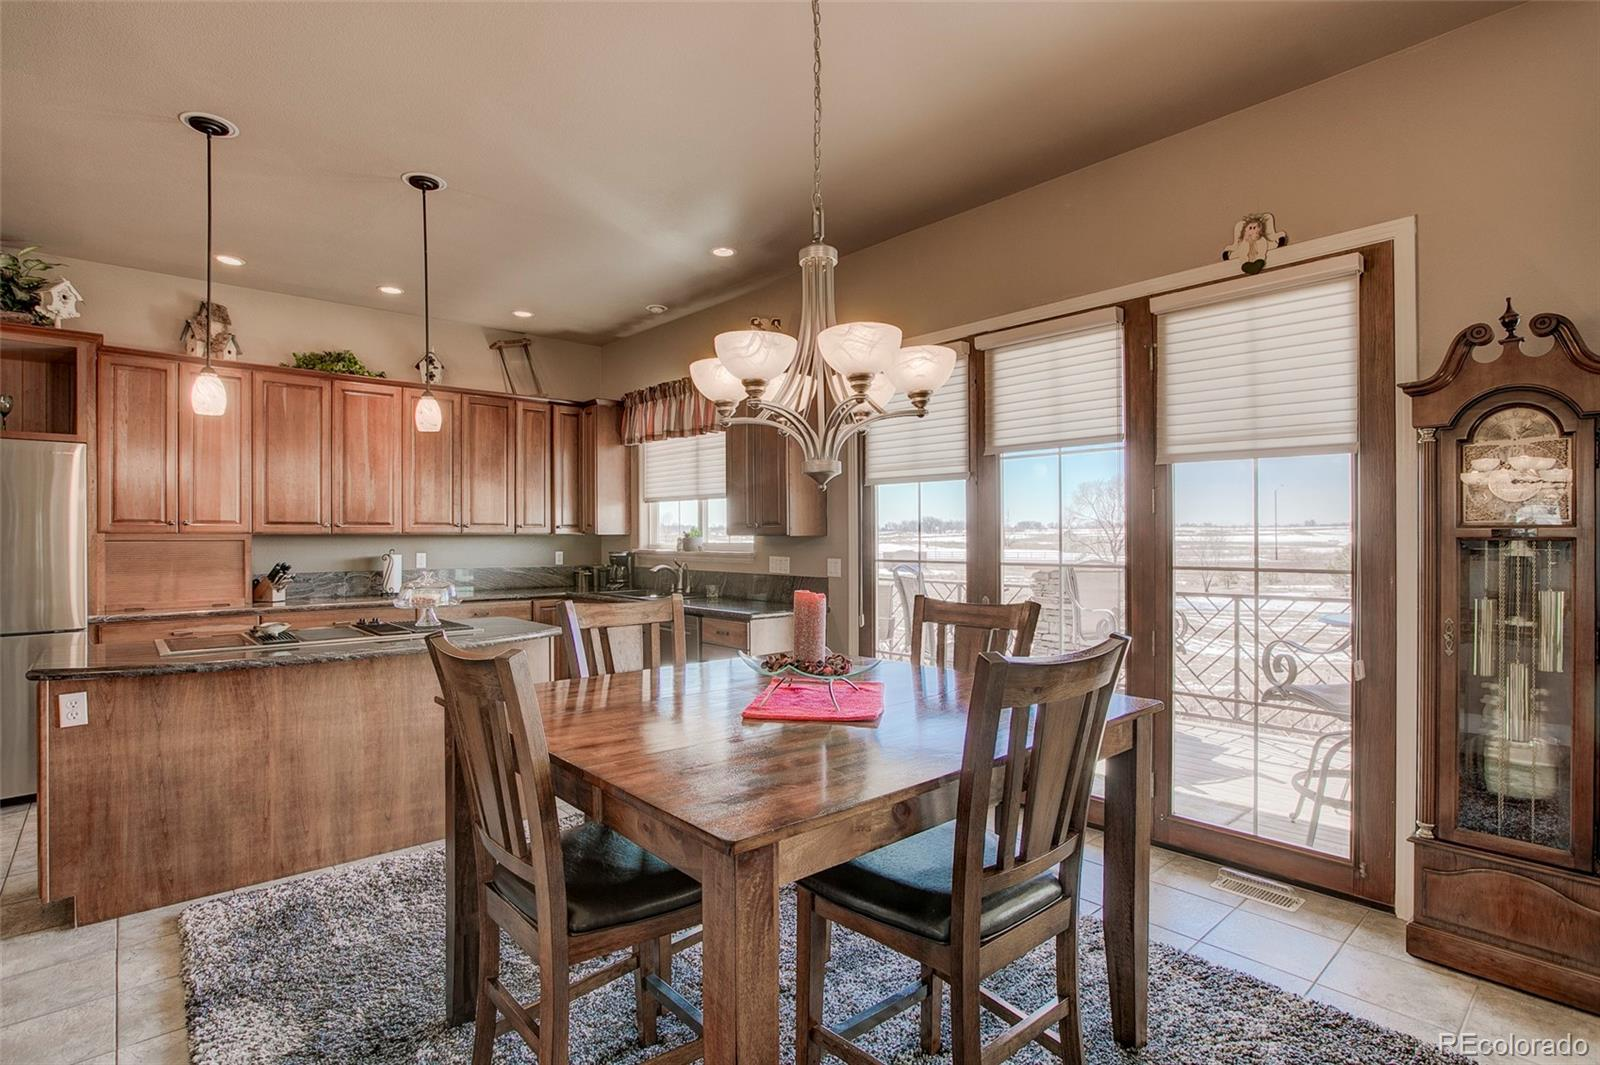 MLS# 7126152 - 13 - 5816 W Conservation Drive, Frederick, CO 80504